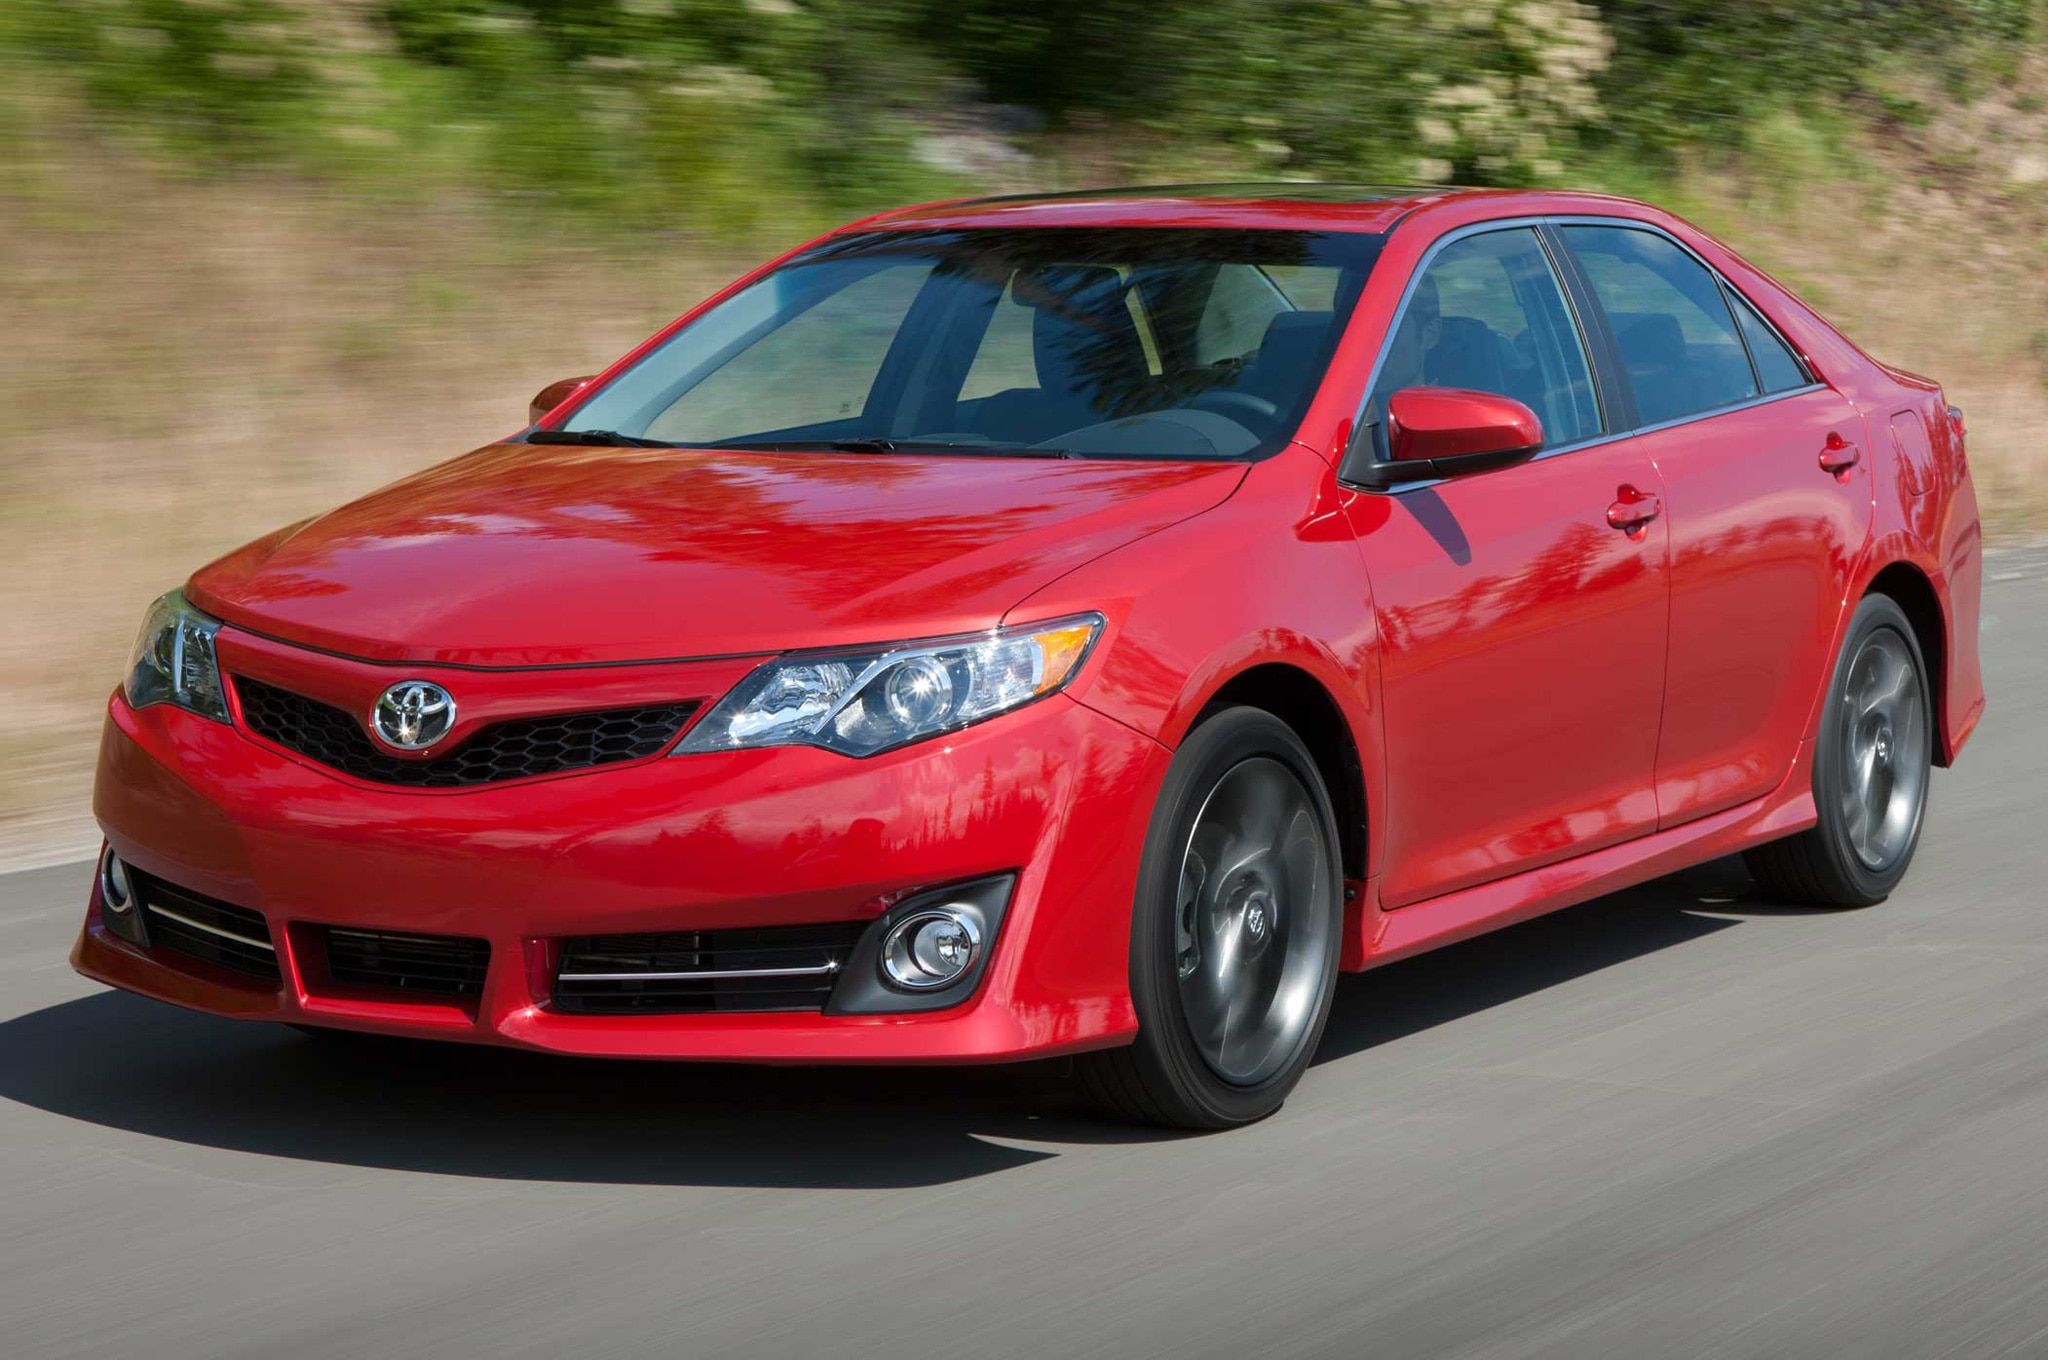 2013 Toyota Camry Front Three Quarter Motion Red1